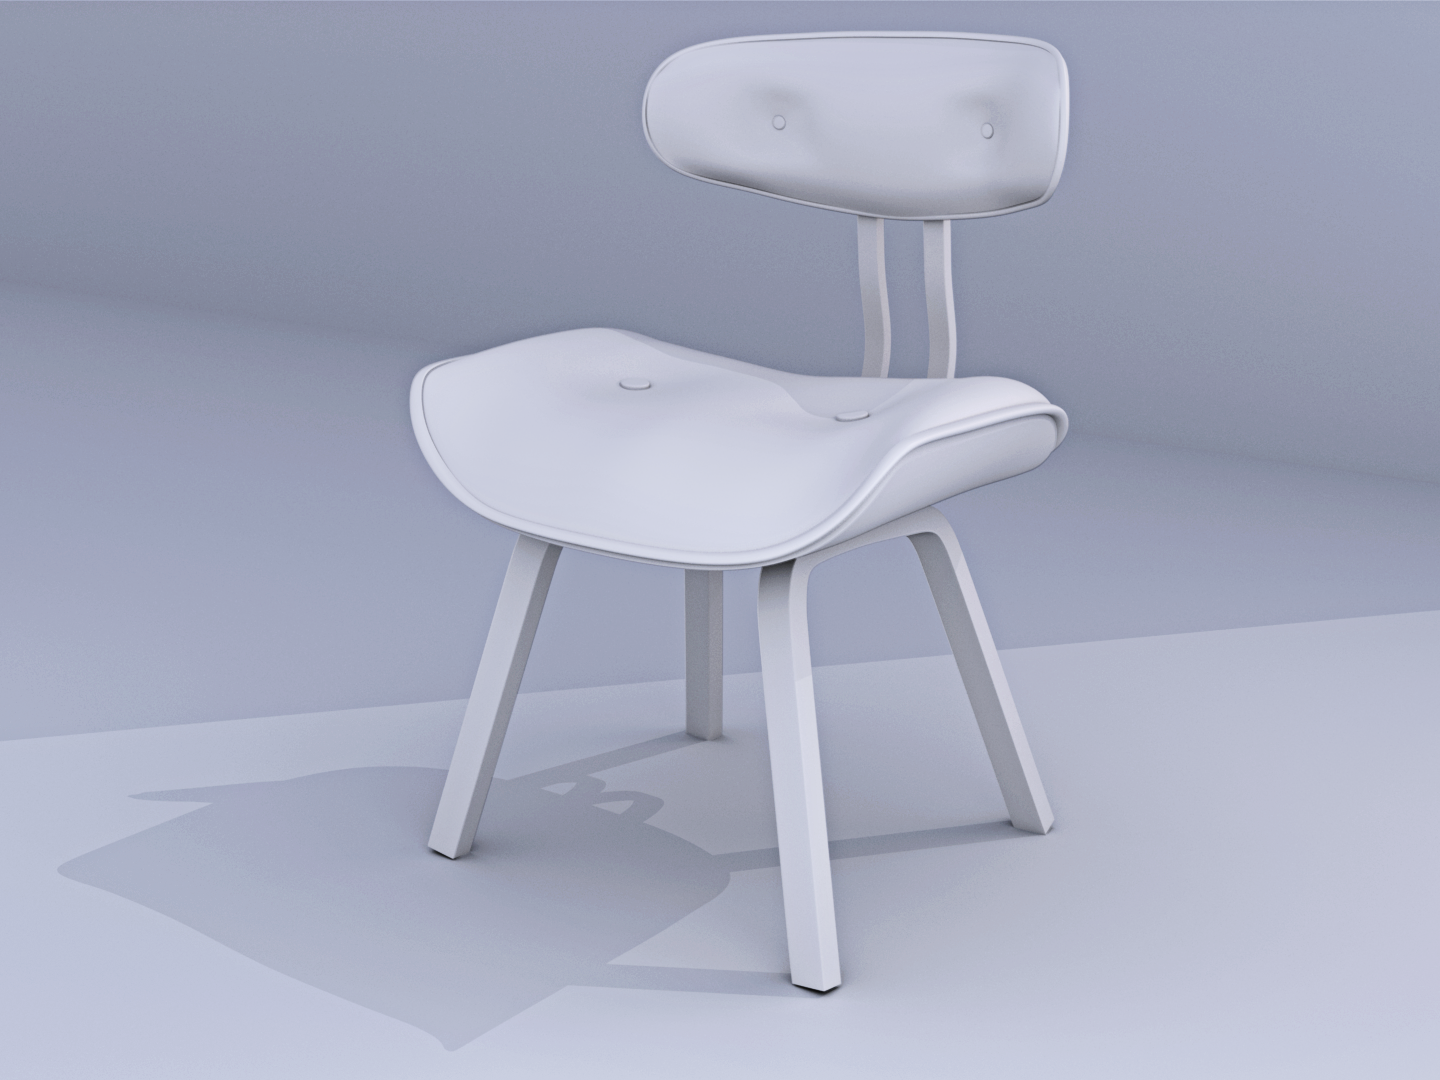 3D Chair Model 3dchair productmodeling 3dmodeling